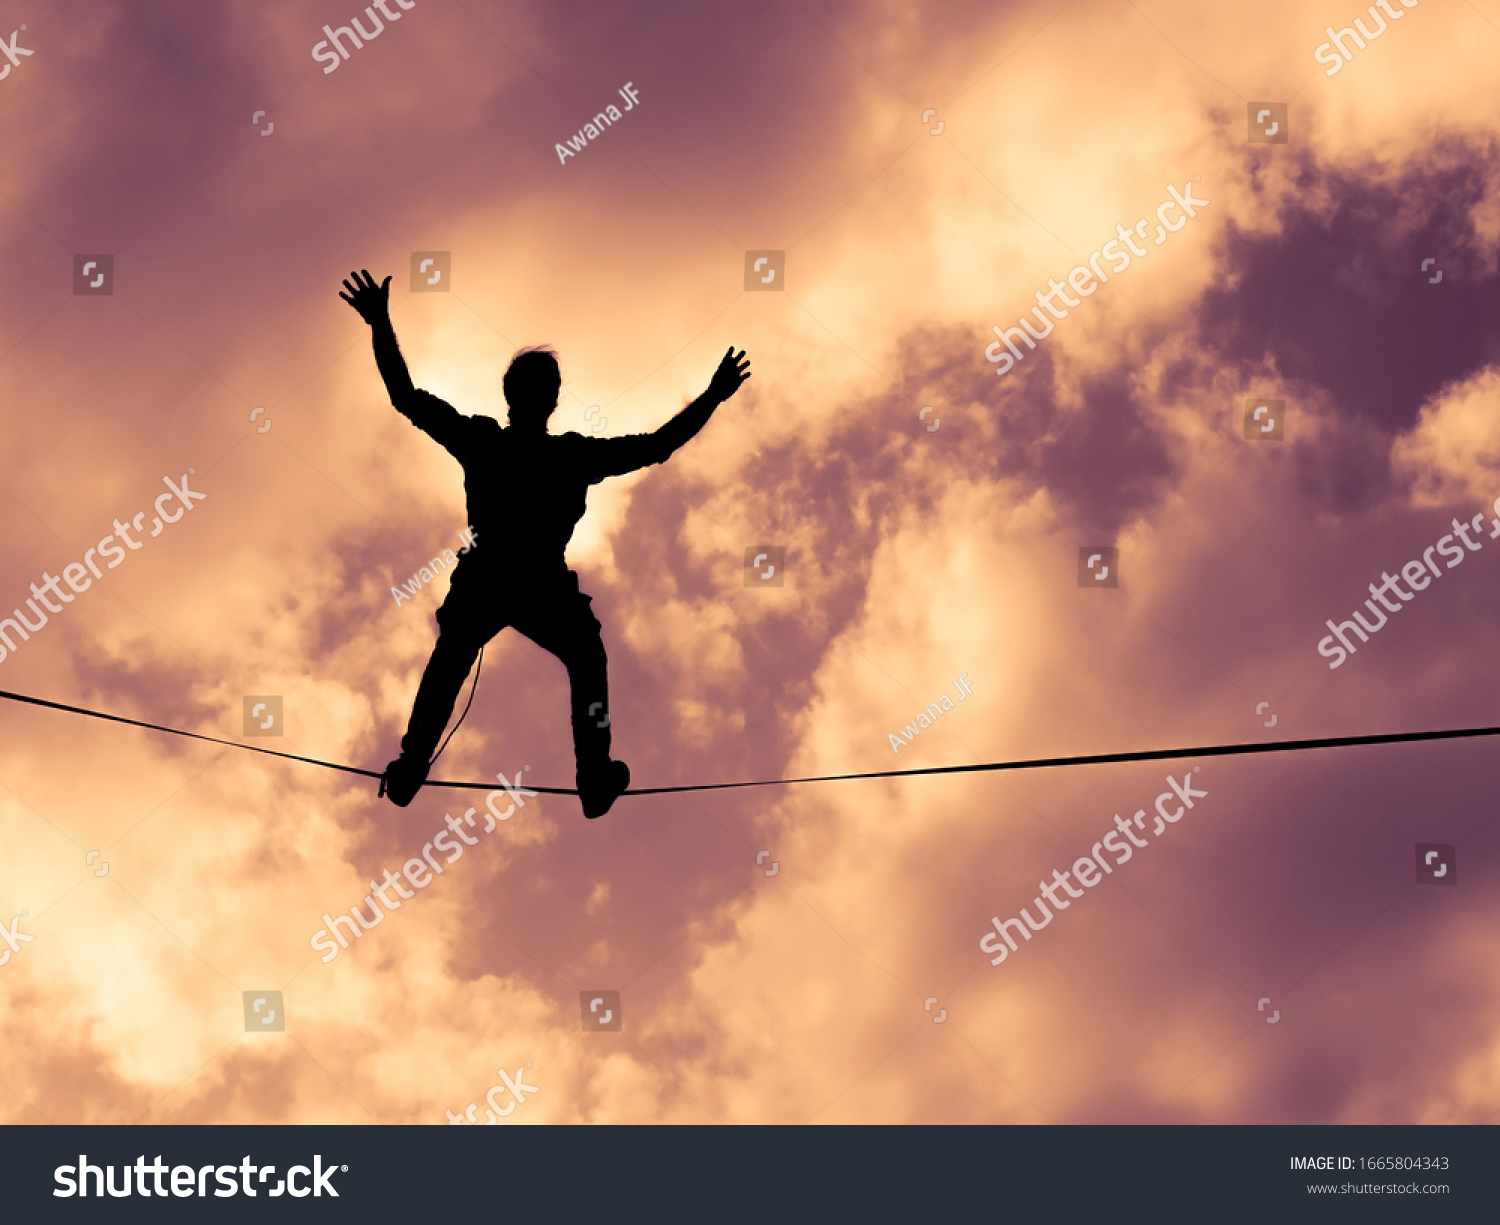 Natural image of a silhouette of tightrope acrobat walking on a hanging wire with a natural colorful and cloudy sky background